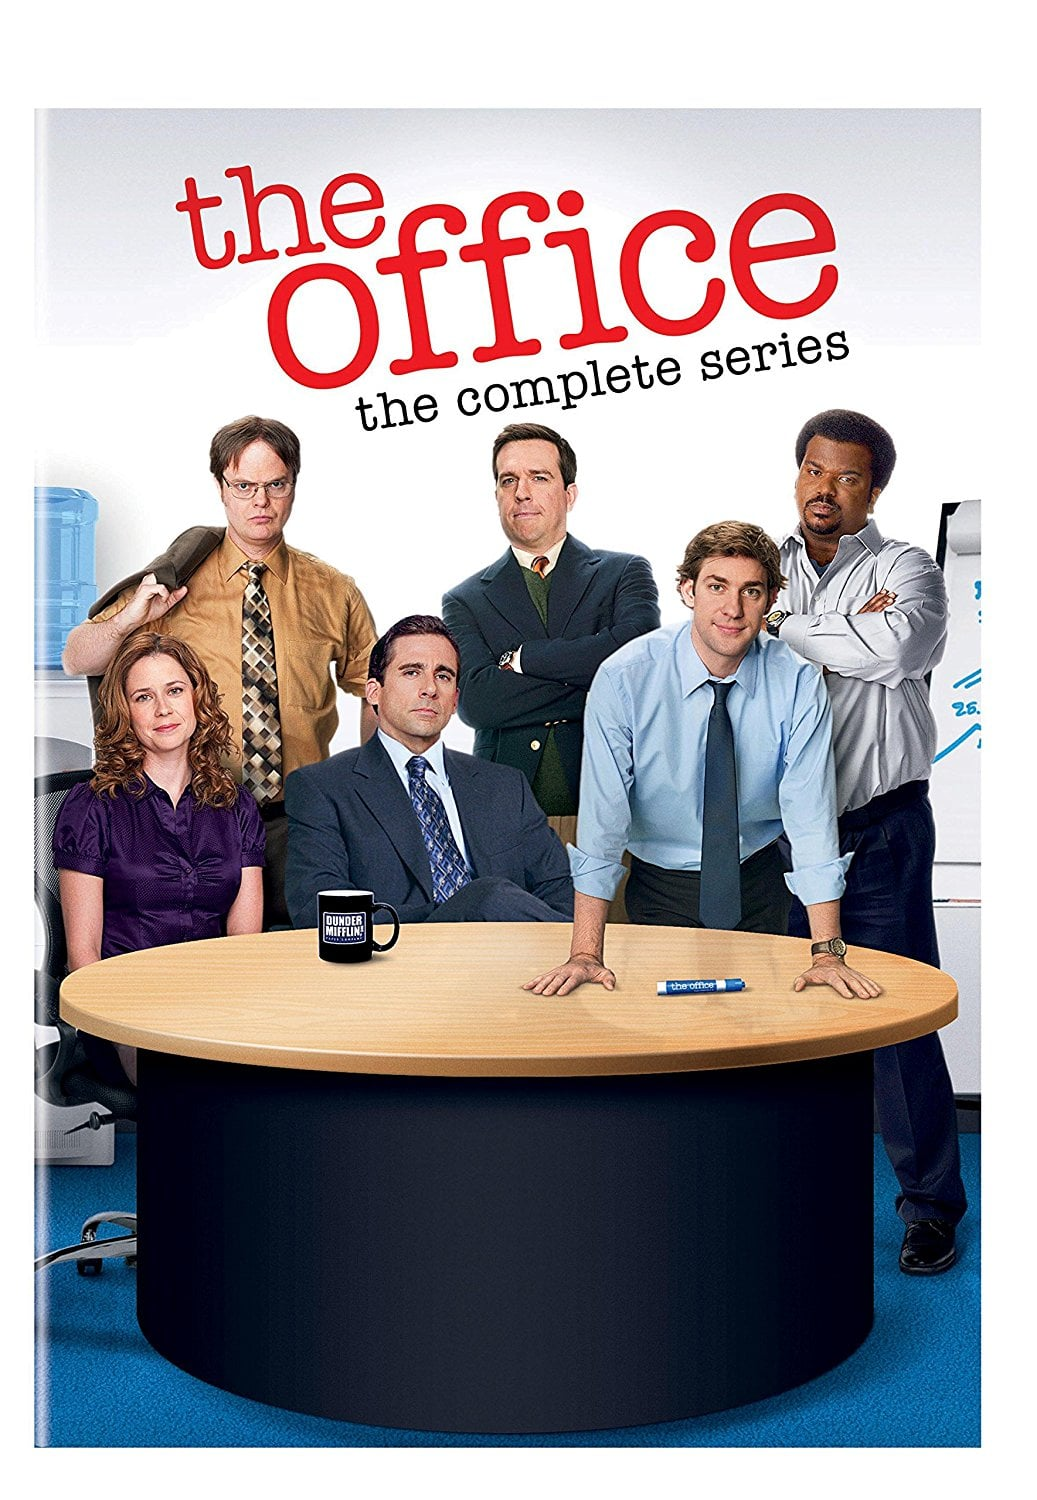 The uk office